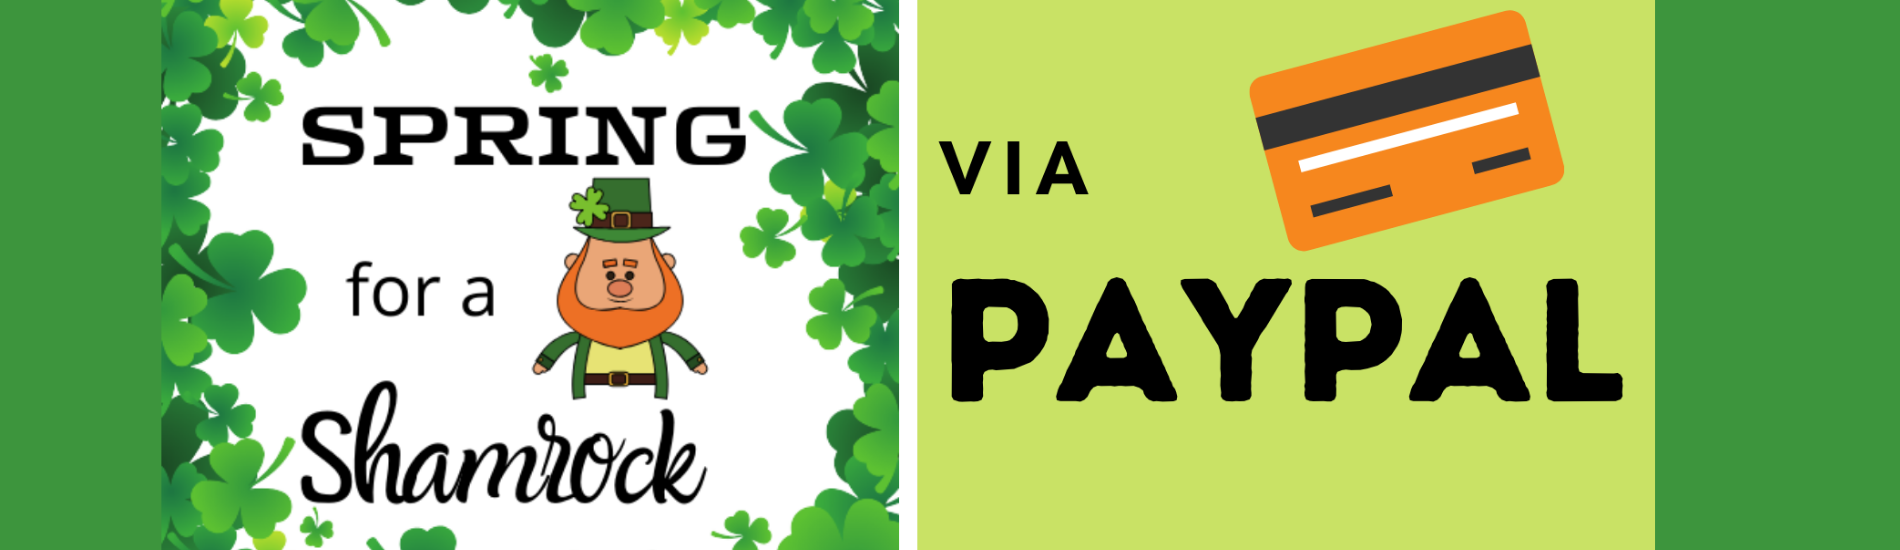 Paypal Shamrock Campaign